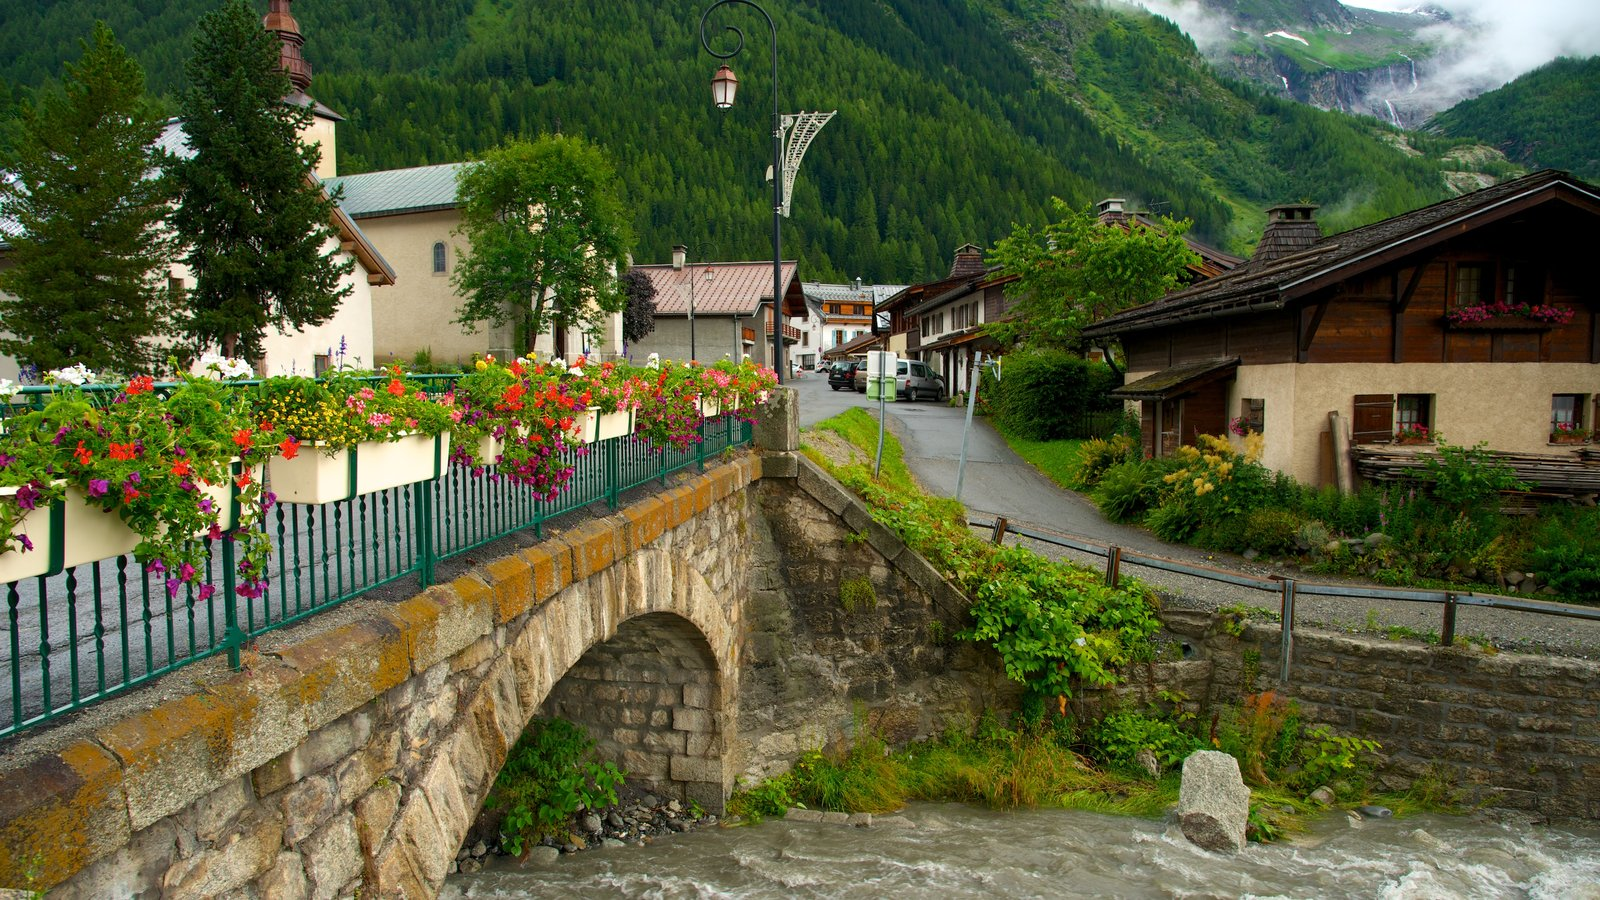 Argentiere which includes a small town or village, a bridge and a river or creek